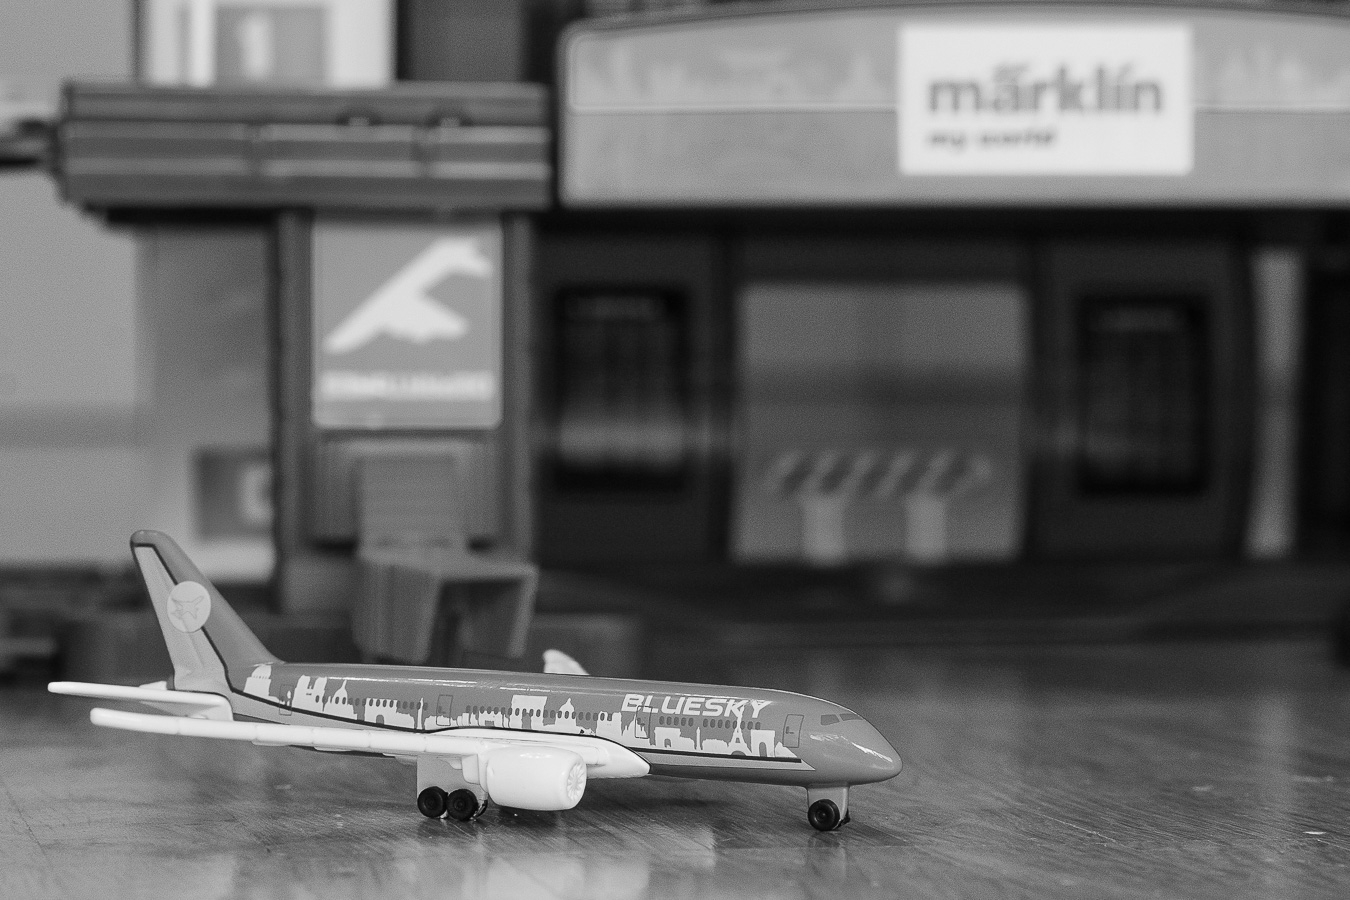 Märklin my world